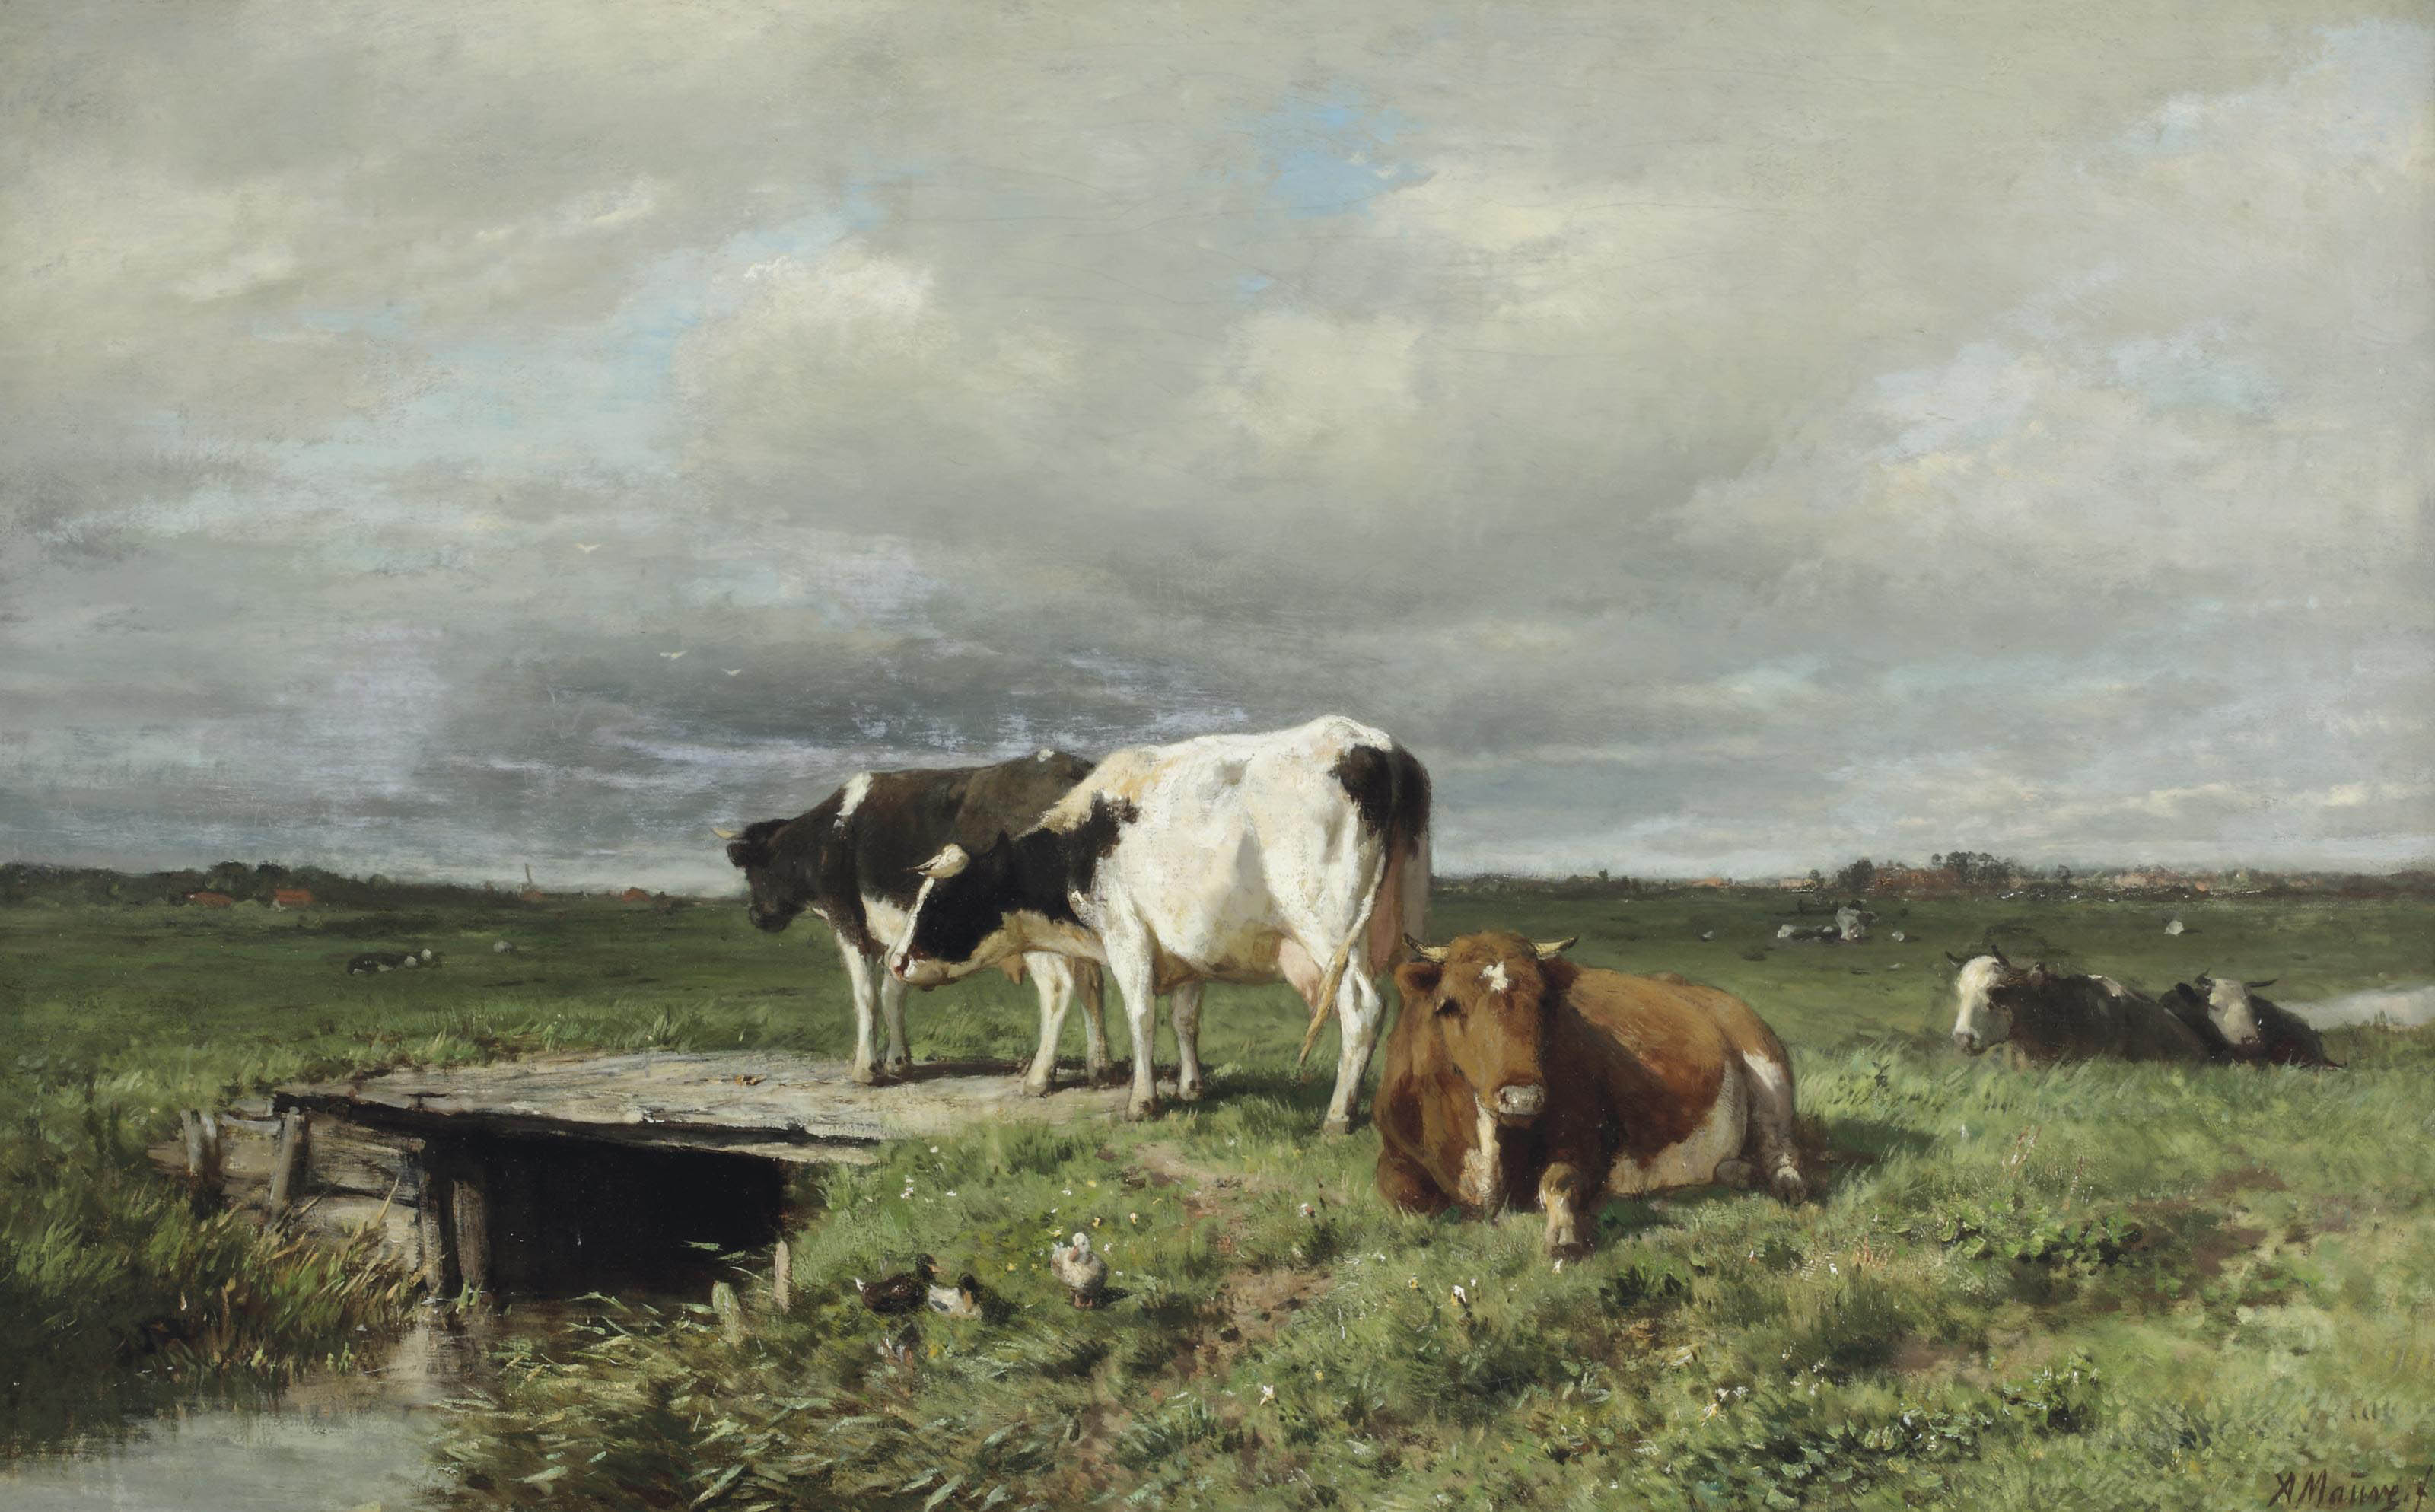 Cattle in an extensive polder landscape